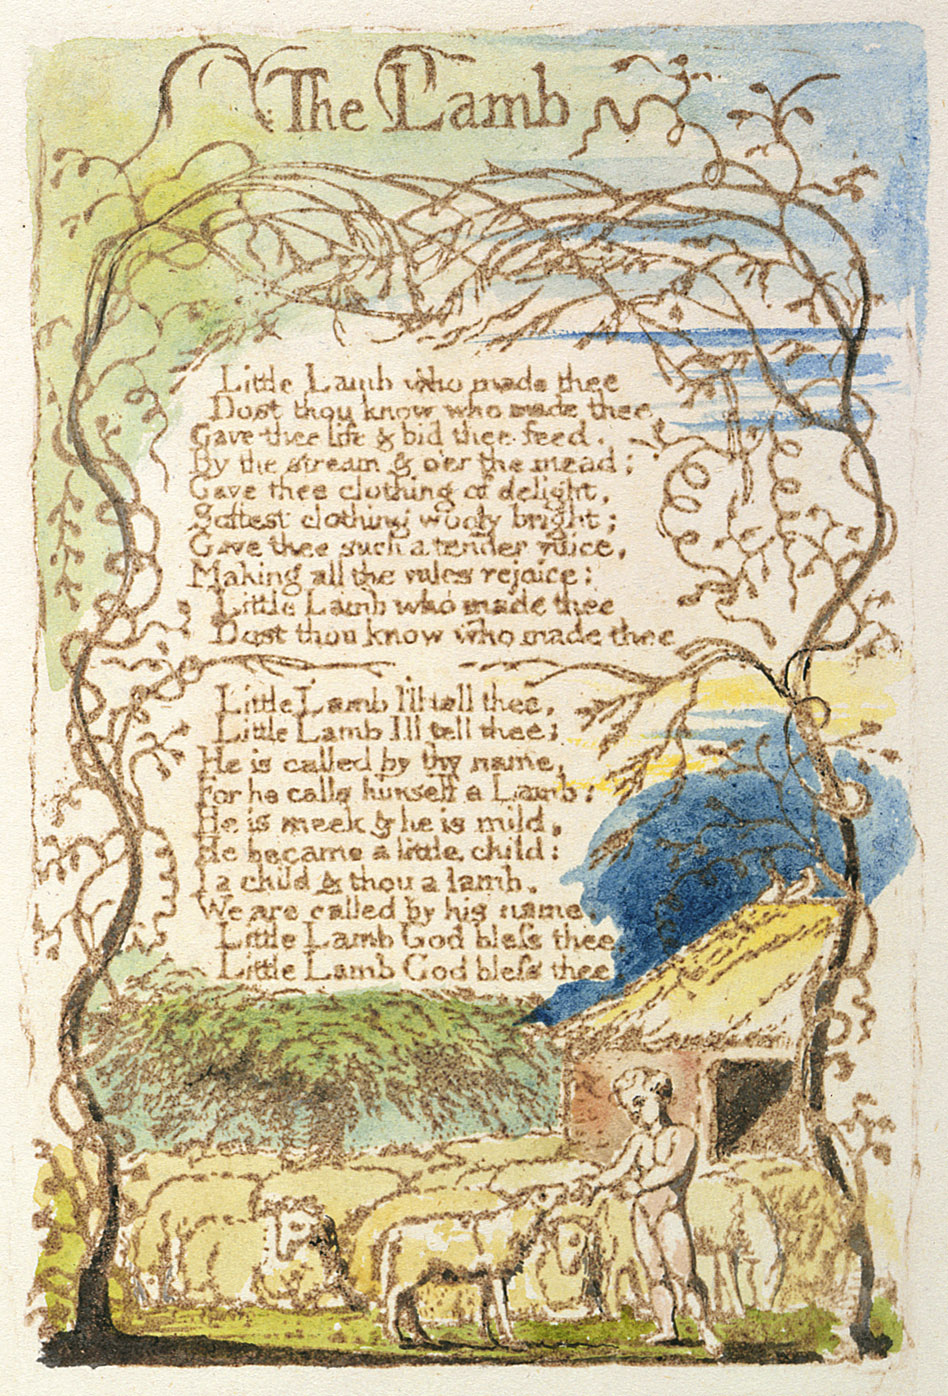 the lamb by william blake analysis Analysis of the tyger by william blake the contrasted subjects presented in the two poems are god's love in ' the lamb' and god's wrath in ' the tyger.